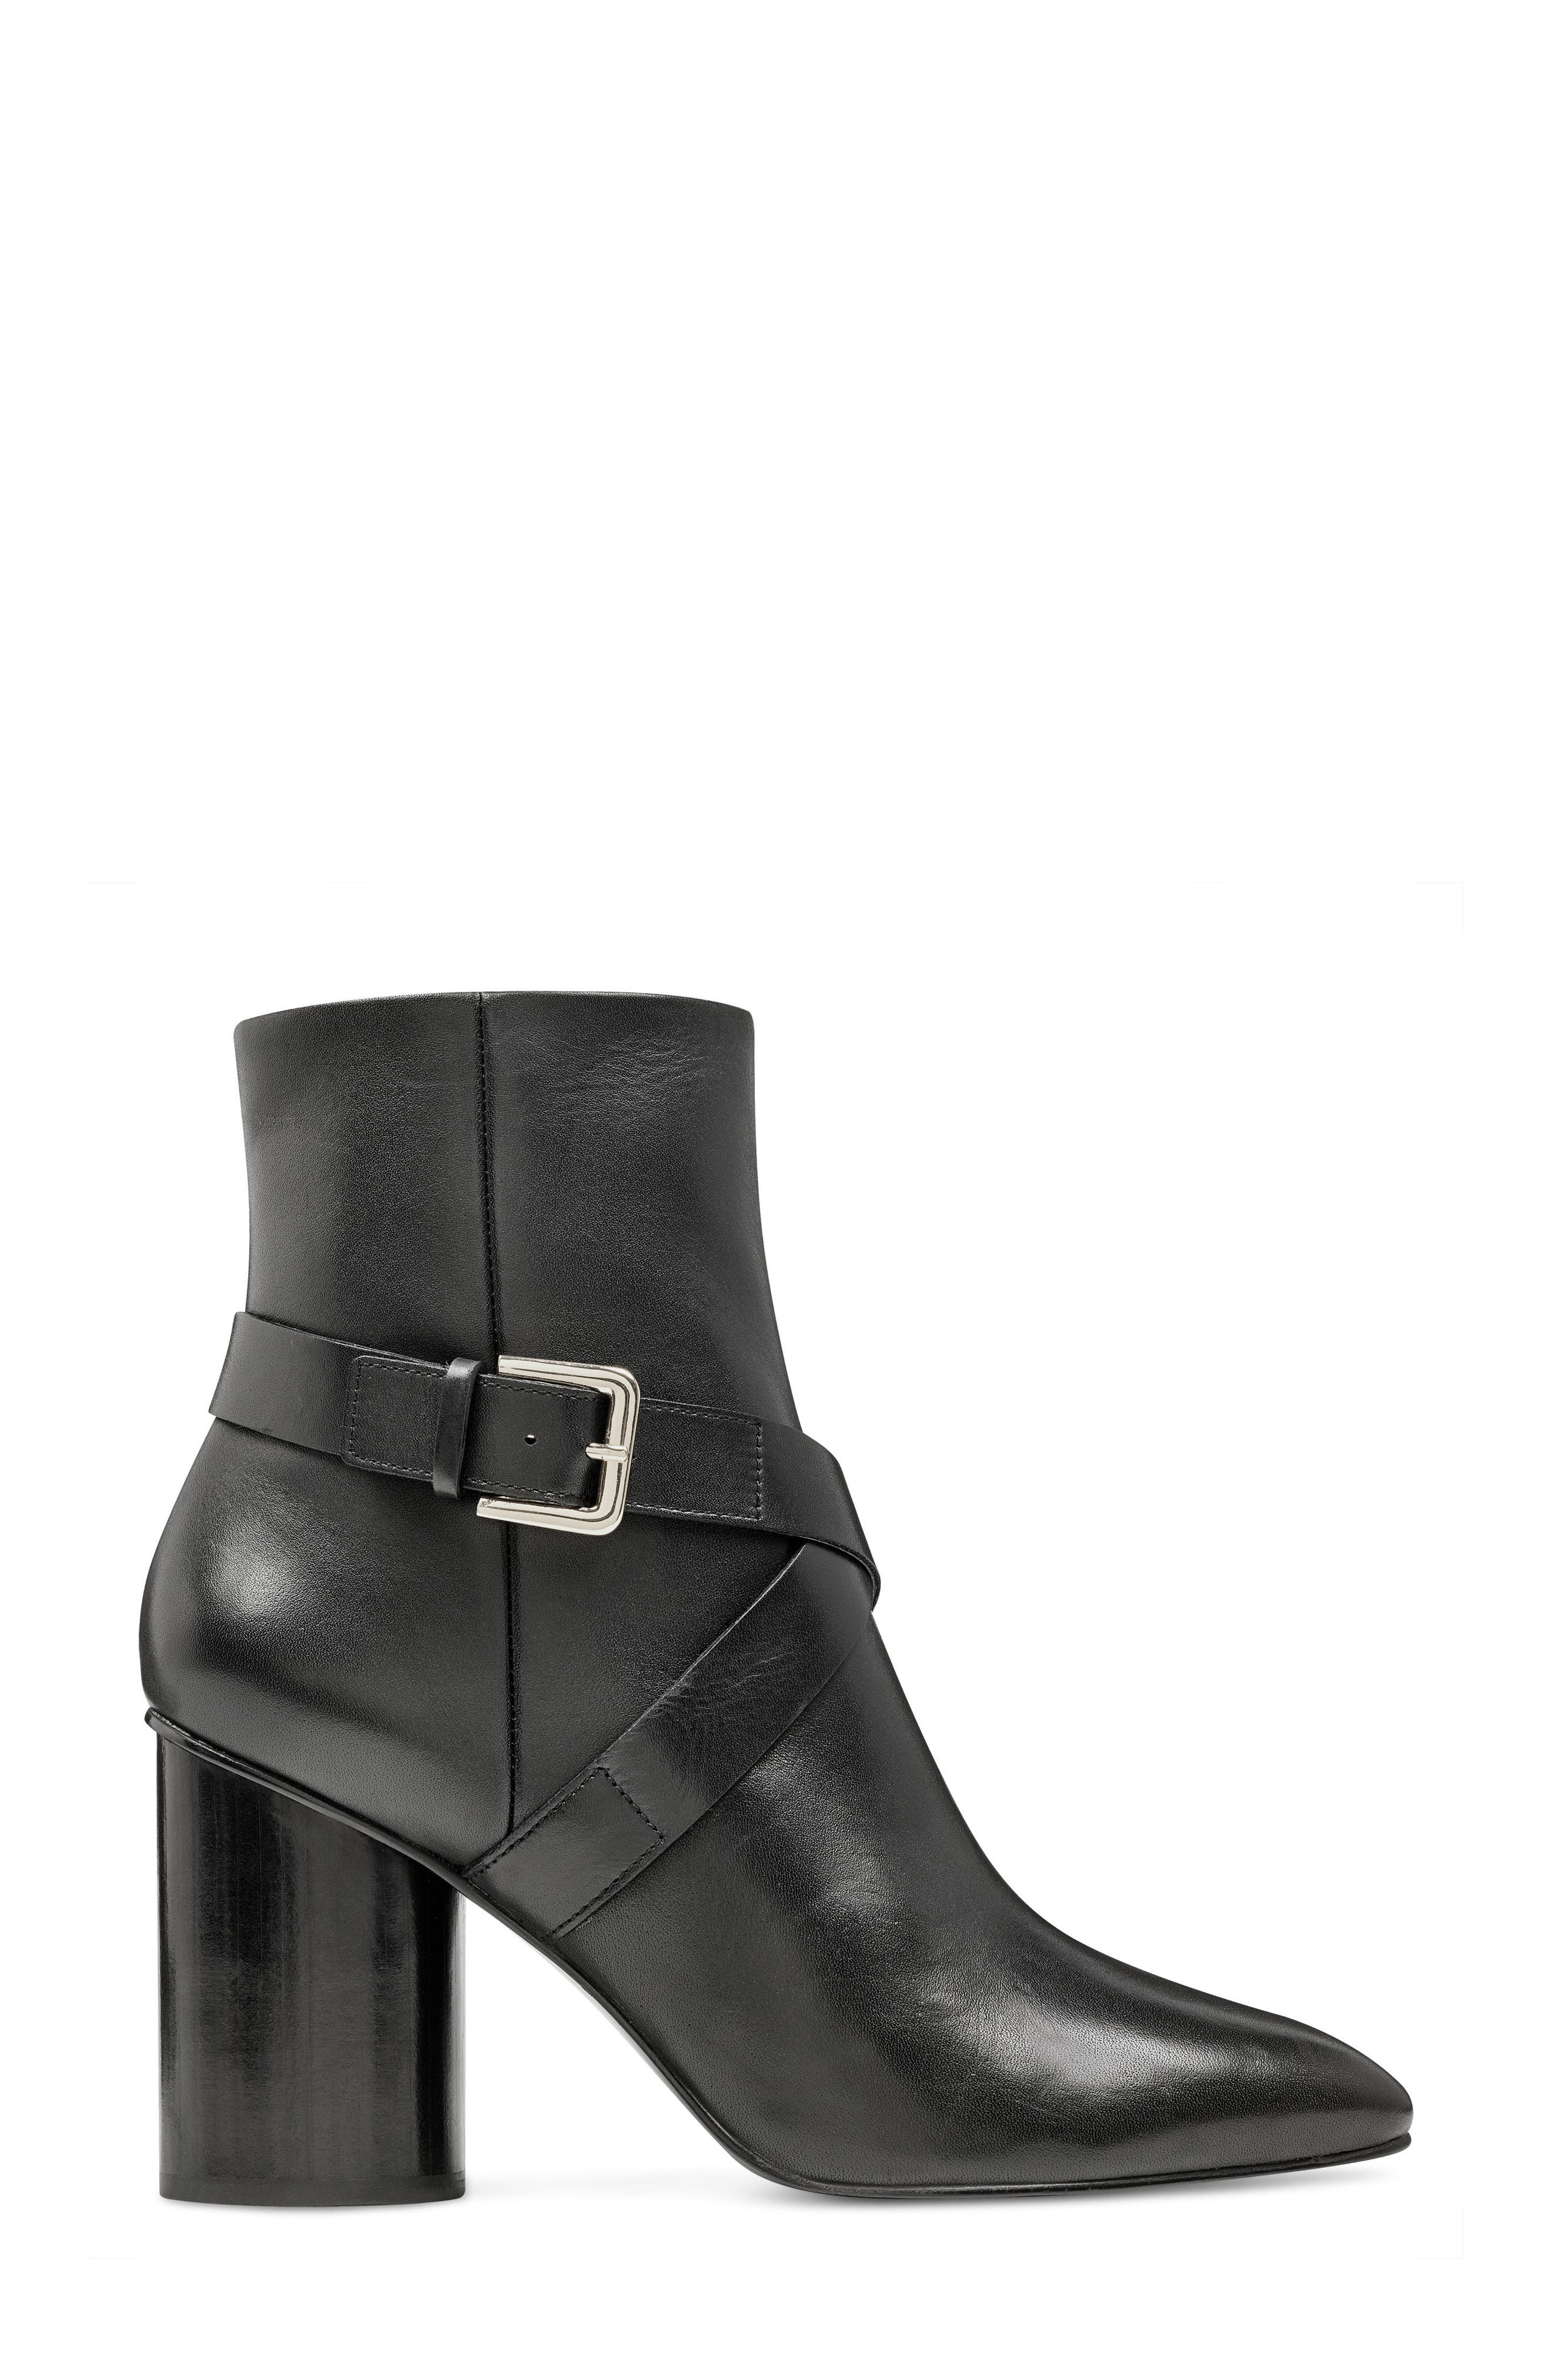 Cavanagh Pointy Toe Bootie,                             Alternate thumbnail 3, color,                             Black Leather